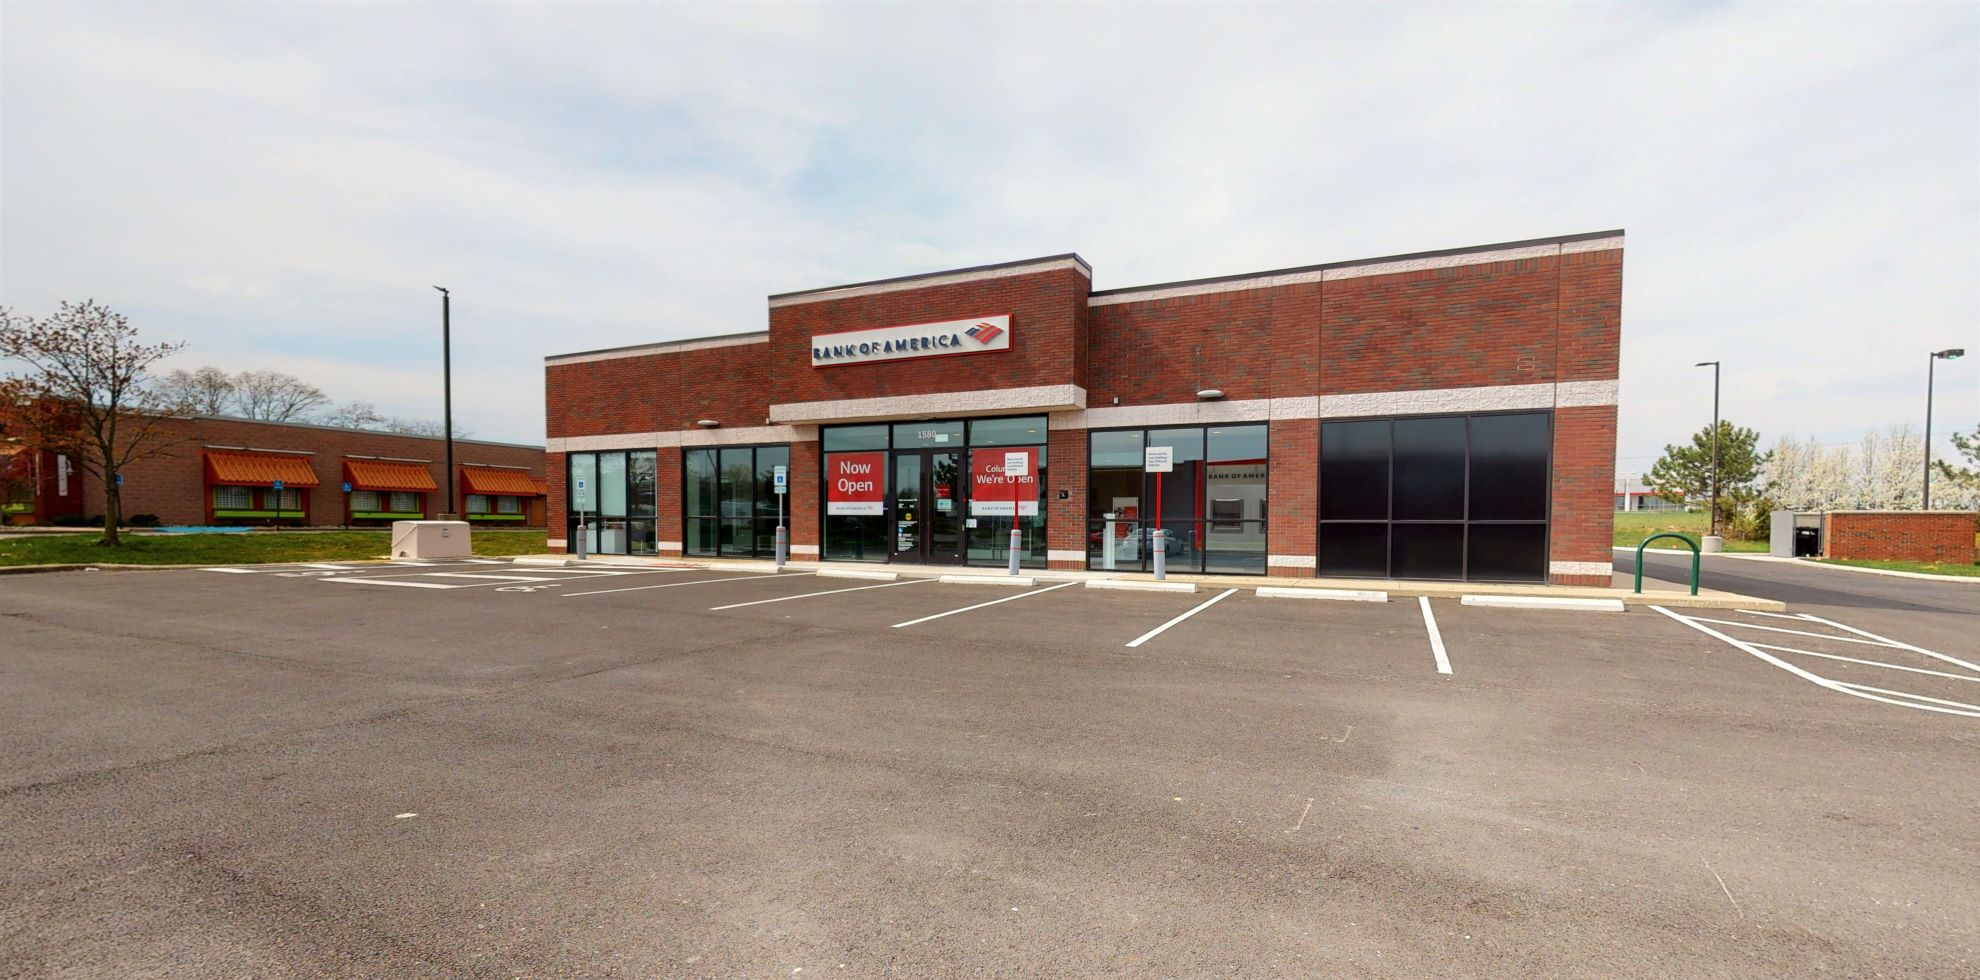 Bank of America financial center with drive-thru ATM   1580 Georgesville Square Dr, Columbus, OH 43228